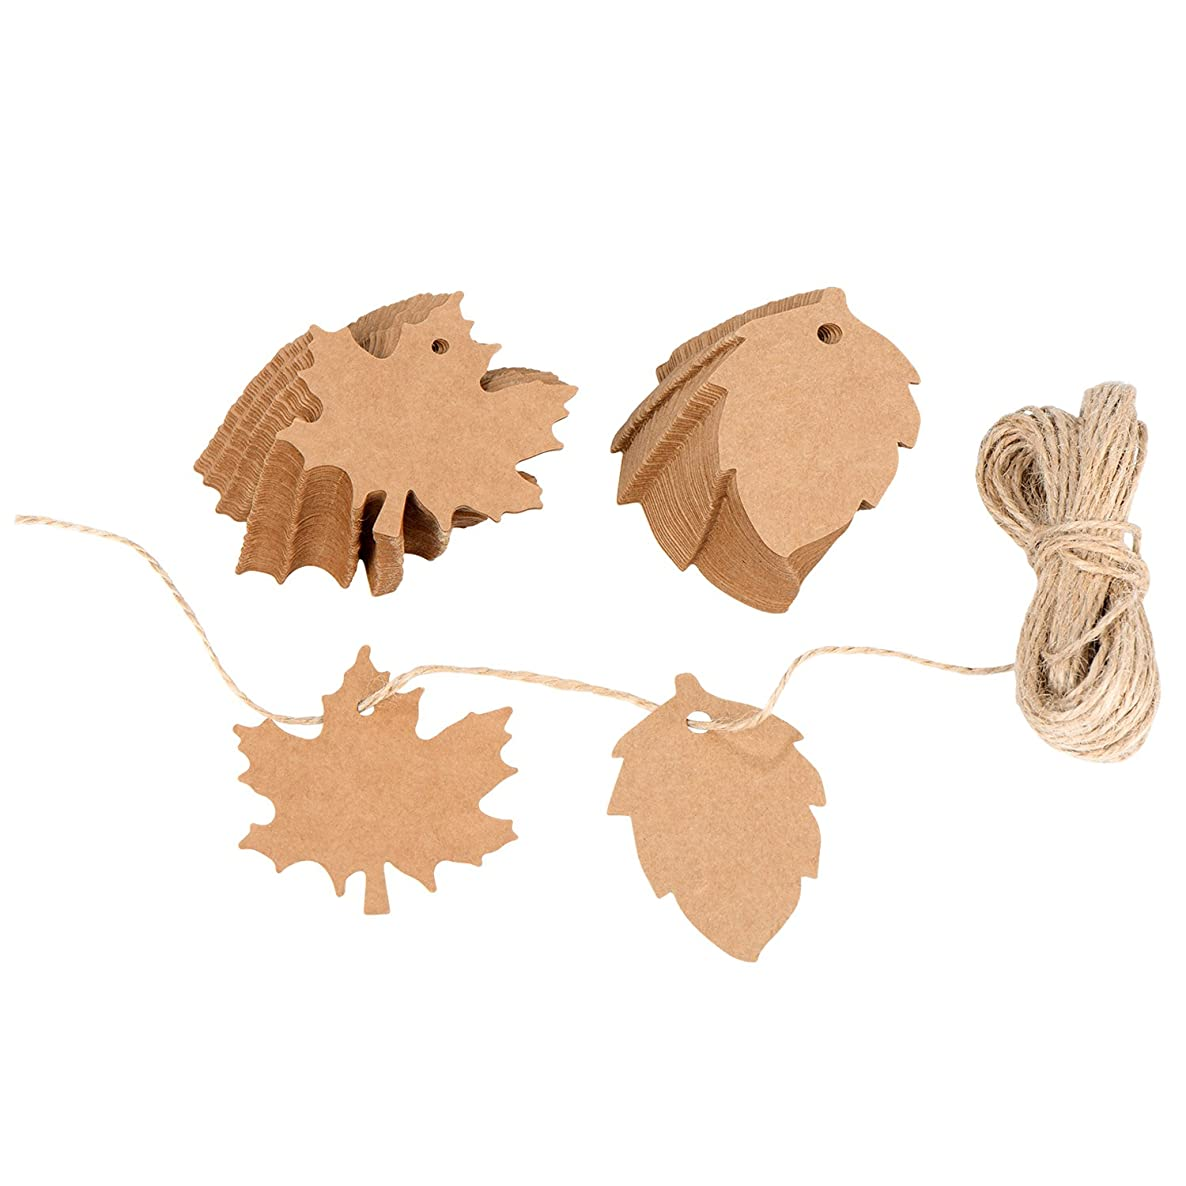 100 Pieces Maple and Leaf Kraft Paper Christmas Thanksgiving Wedding Paty Favor Gift Tags Gift Wrapping with 20 m / 66 Feet String